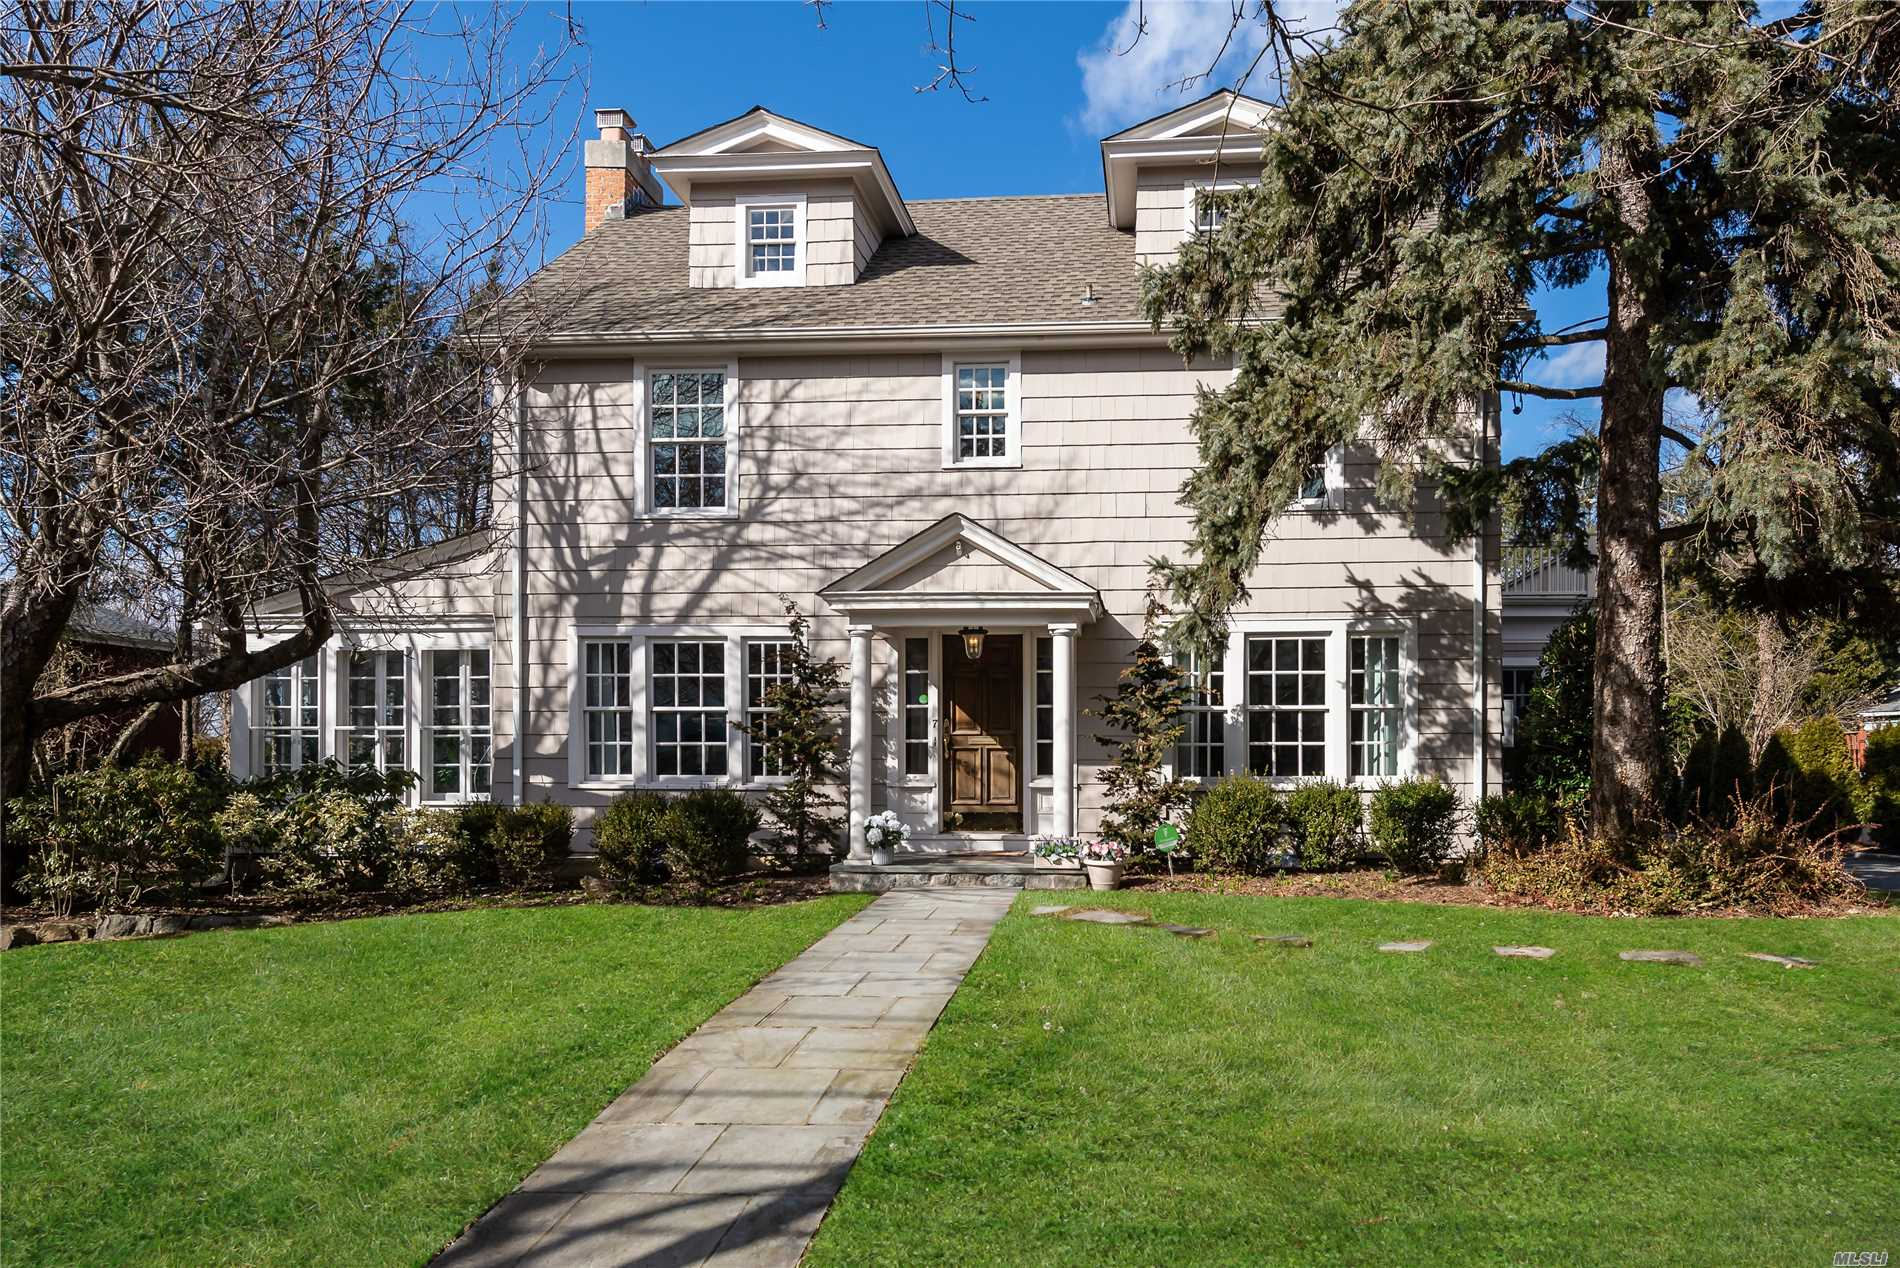 Beautifully Updated 5 Bed, 5 Bath Classic Center Hall Colonial W Modern Amenities. Gracious Foyer Opens To Lr With Fp & French Doors To Sunroom, Fdr. Chefs Kitchen - Wolf, Subzero, Marble Island, Butlers Pantry Overlooks Family Rm W Gas Fp. Mudroom Off Kitchen. Master Suite W Luxury Bath, Balcony & Huge Closet. 4 Generous Family Bedrooms. This House Has A Great Flow. Lower Level Offers Playroom, Office, Laundry, 1/2 Bath. Lovely Patio & Backyard. Beach & Mooring. Taxes Successfully Grieved.